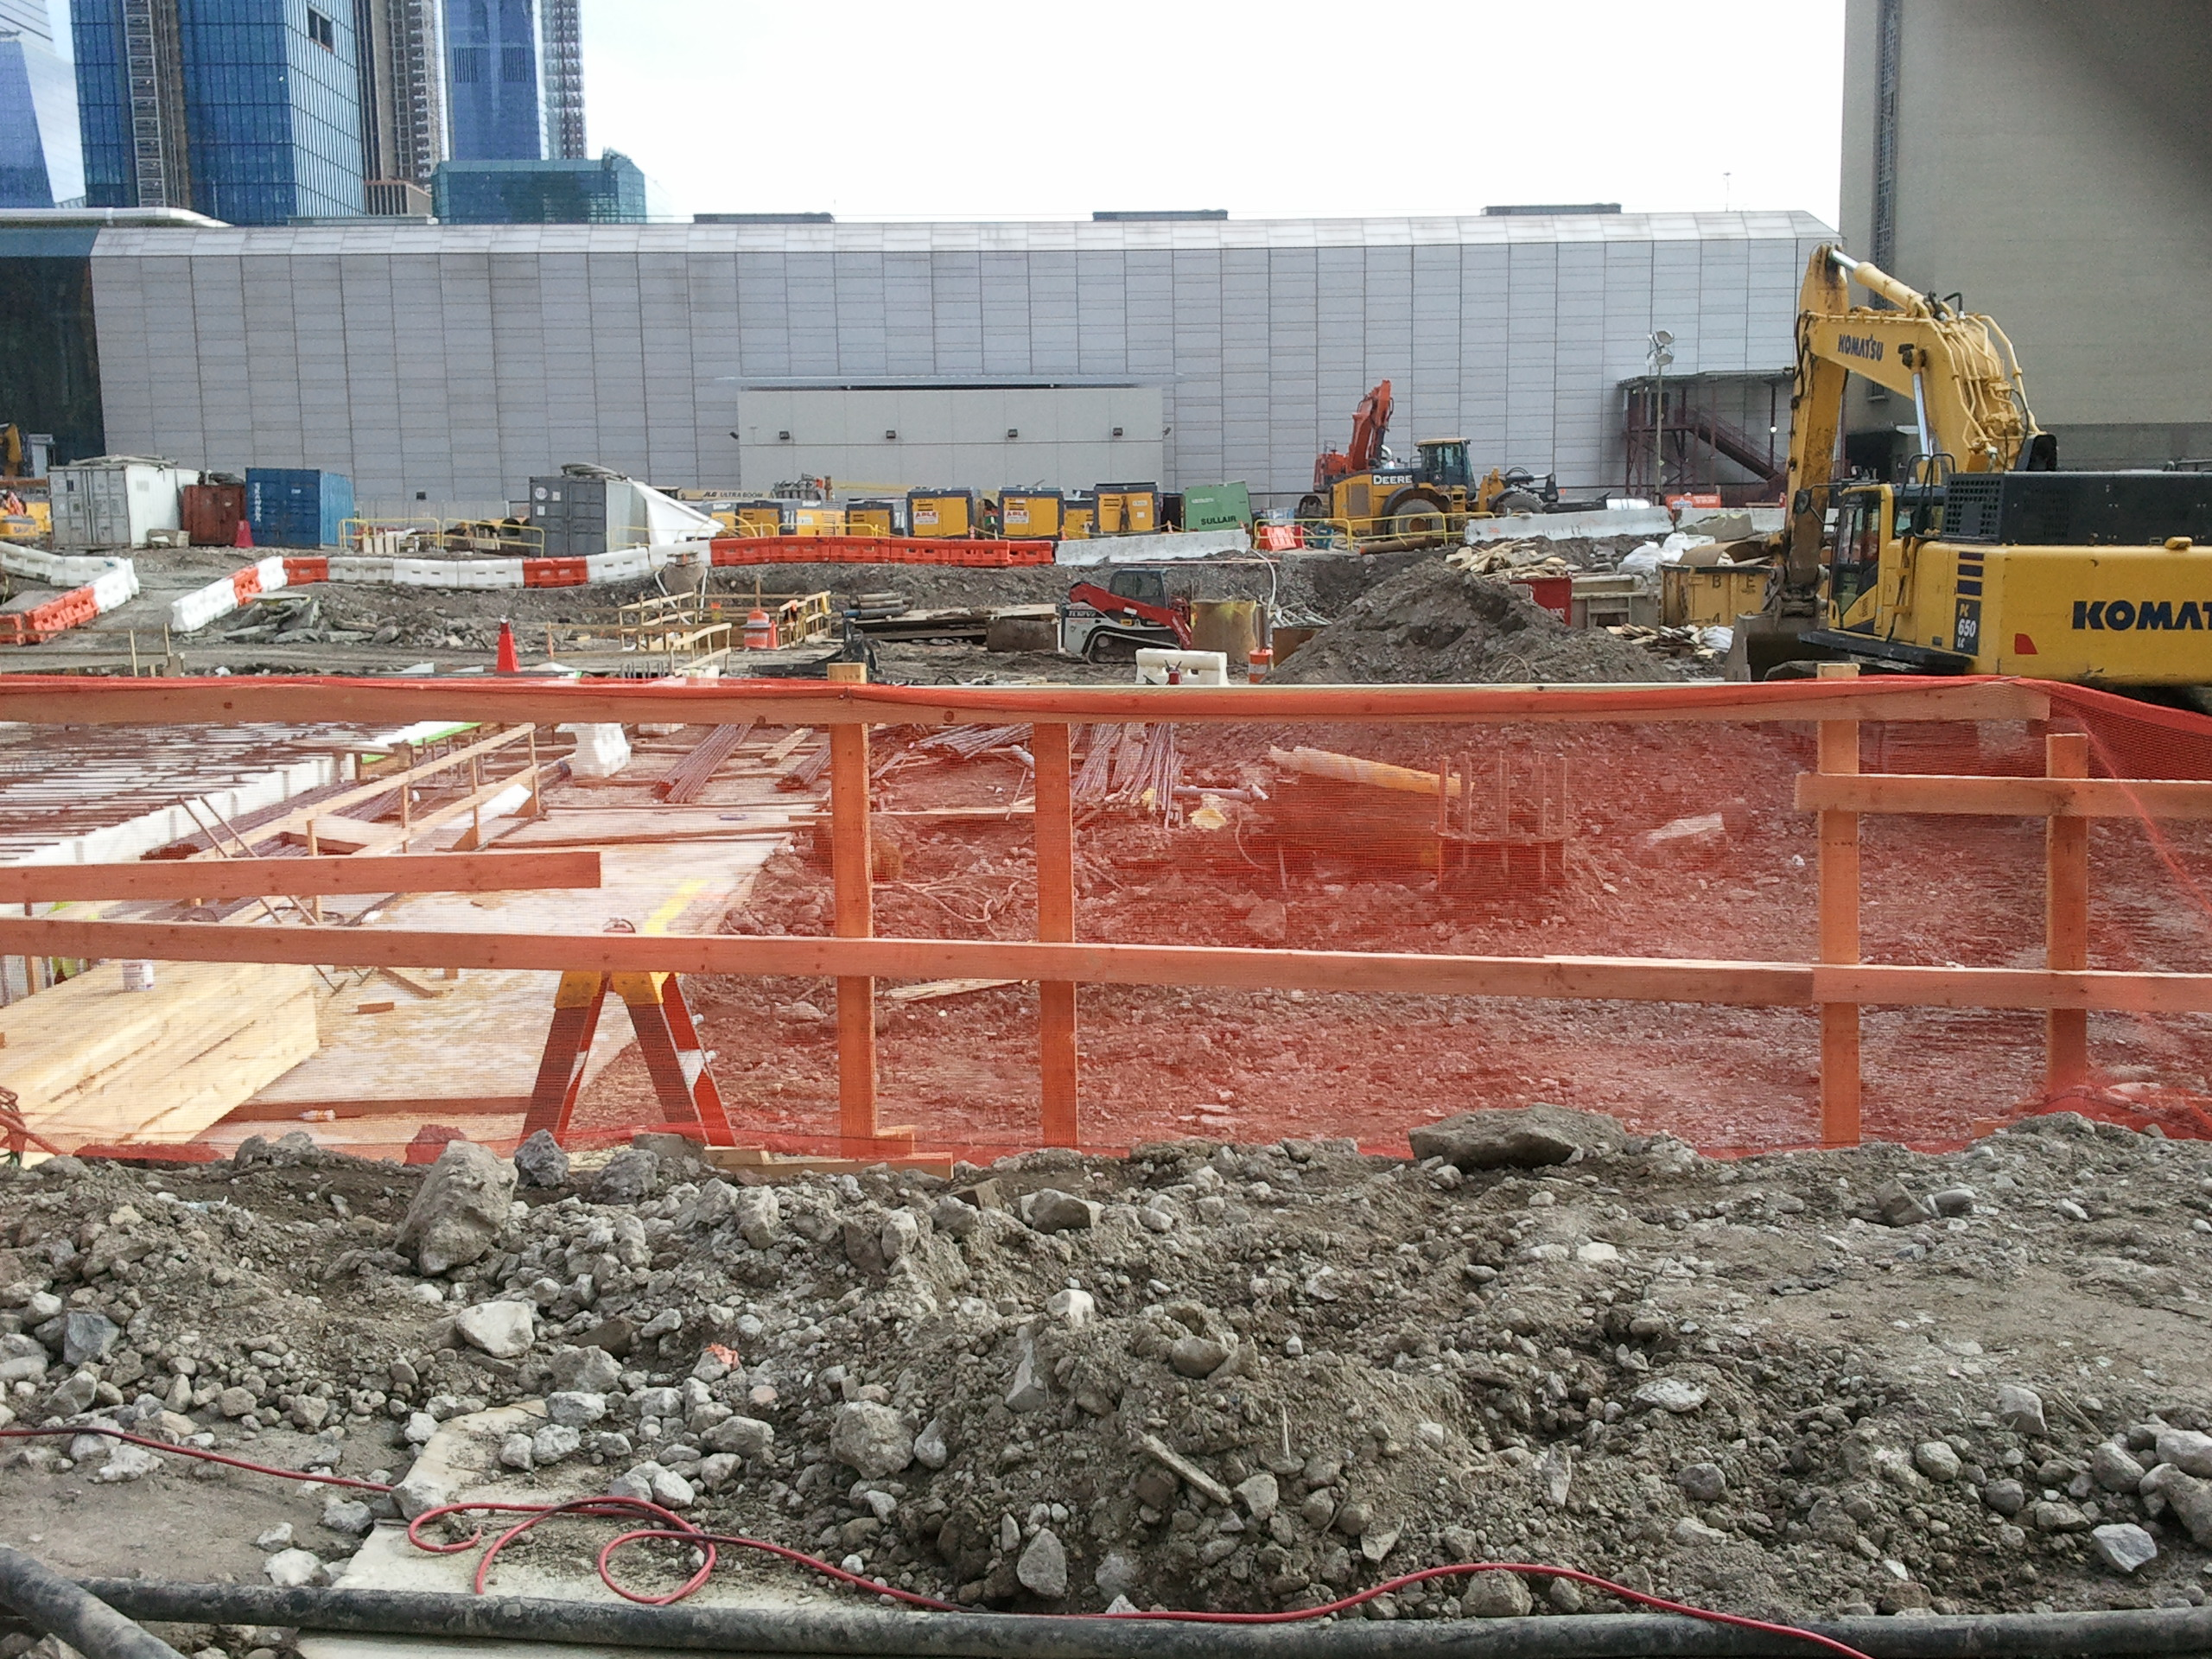 Javits Center Calendar.Nycc 2018 Update How S That Javits Center Construction Going The